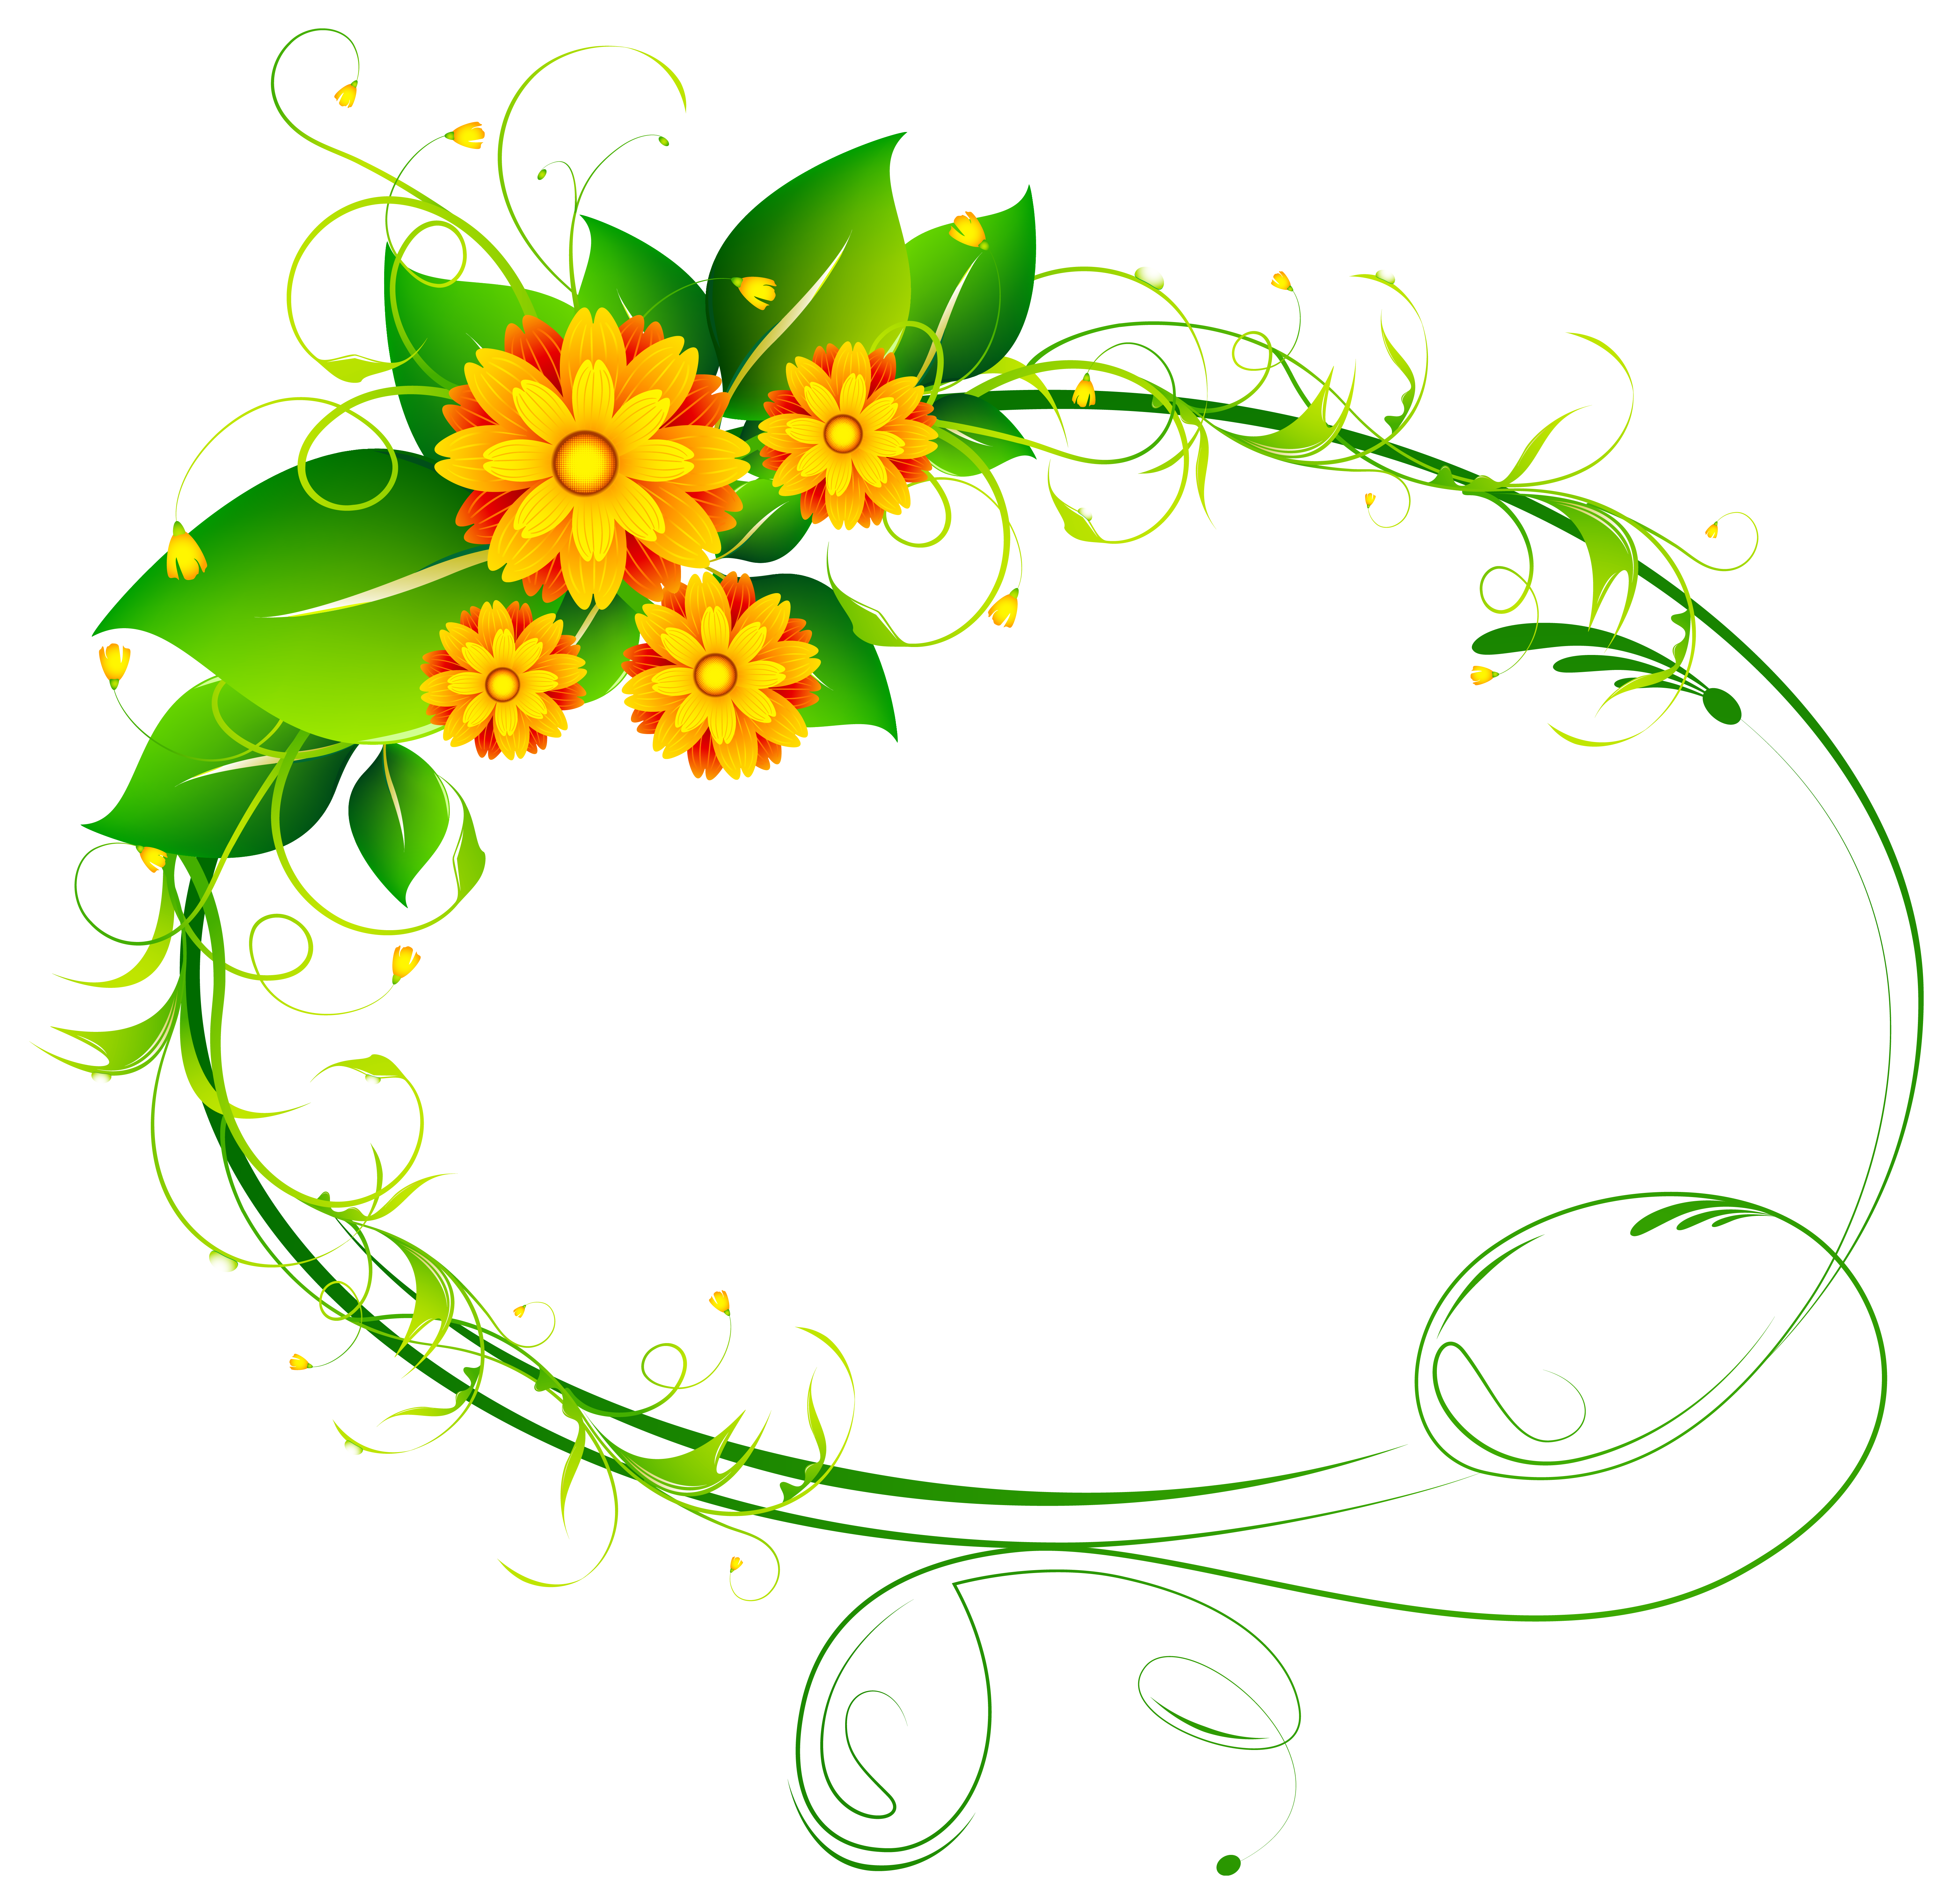 Floral clipart oval Floral Image View Art full